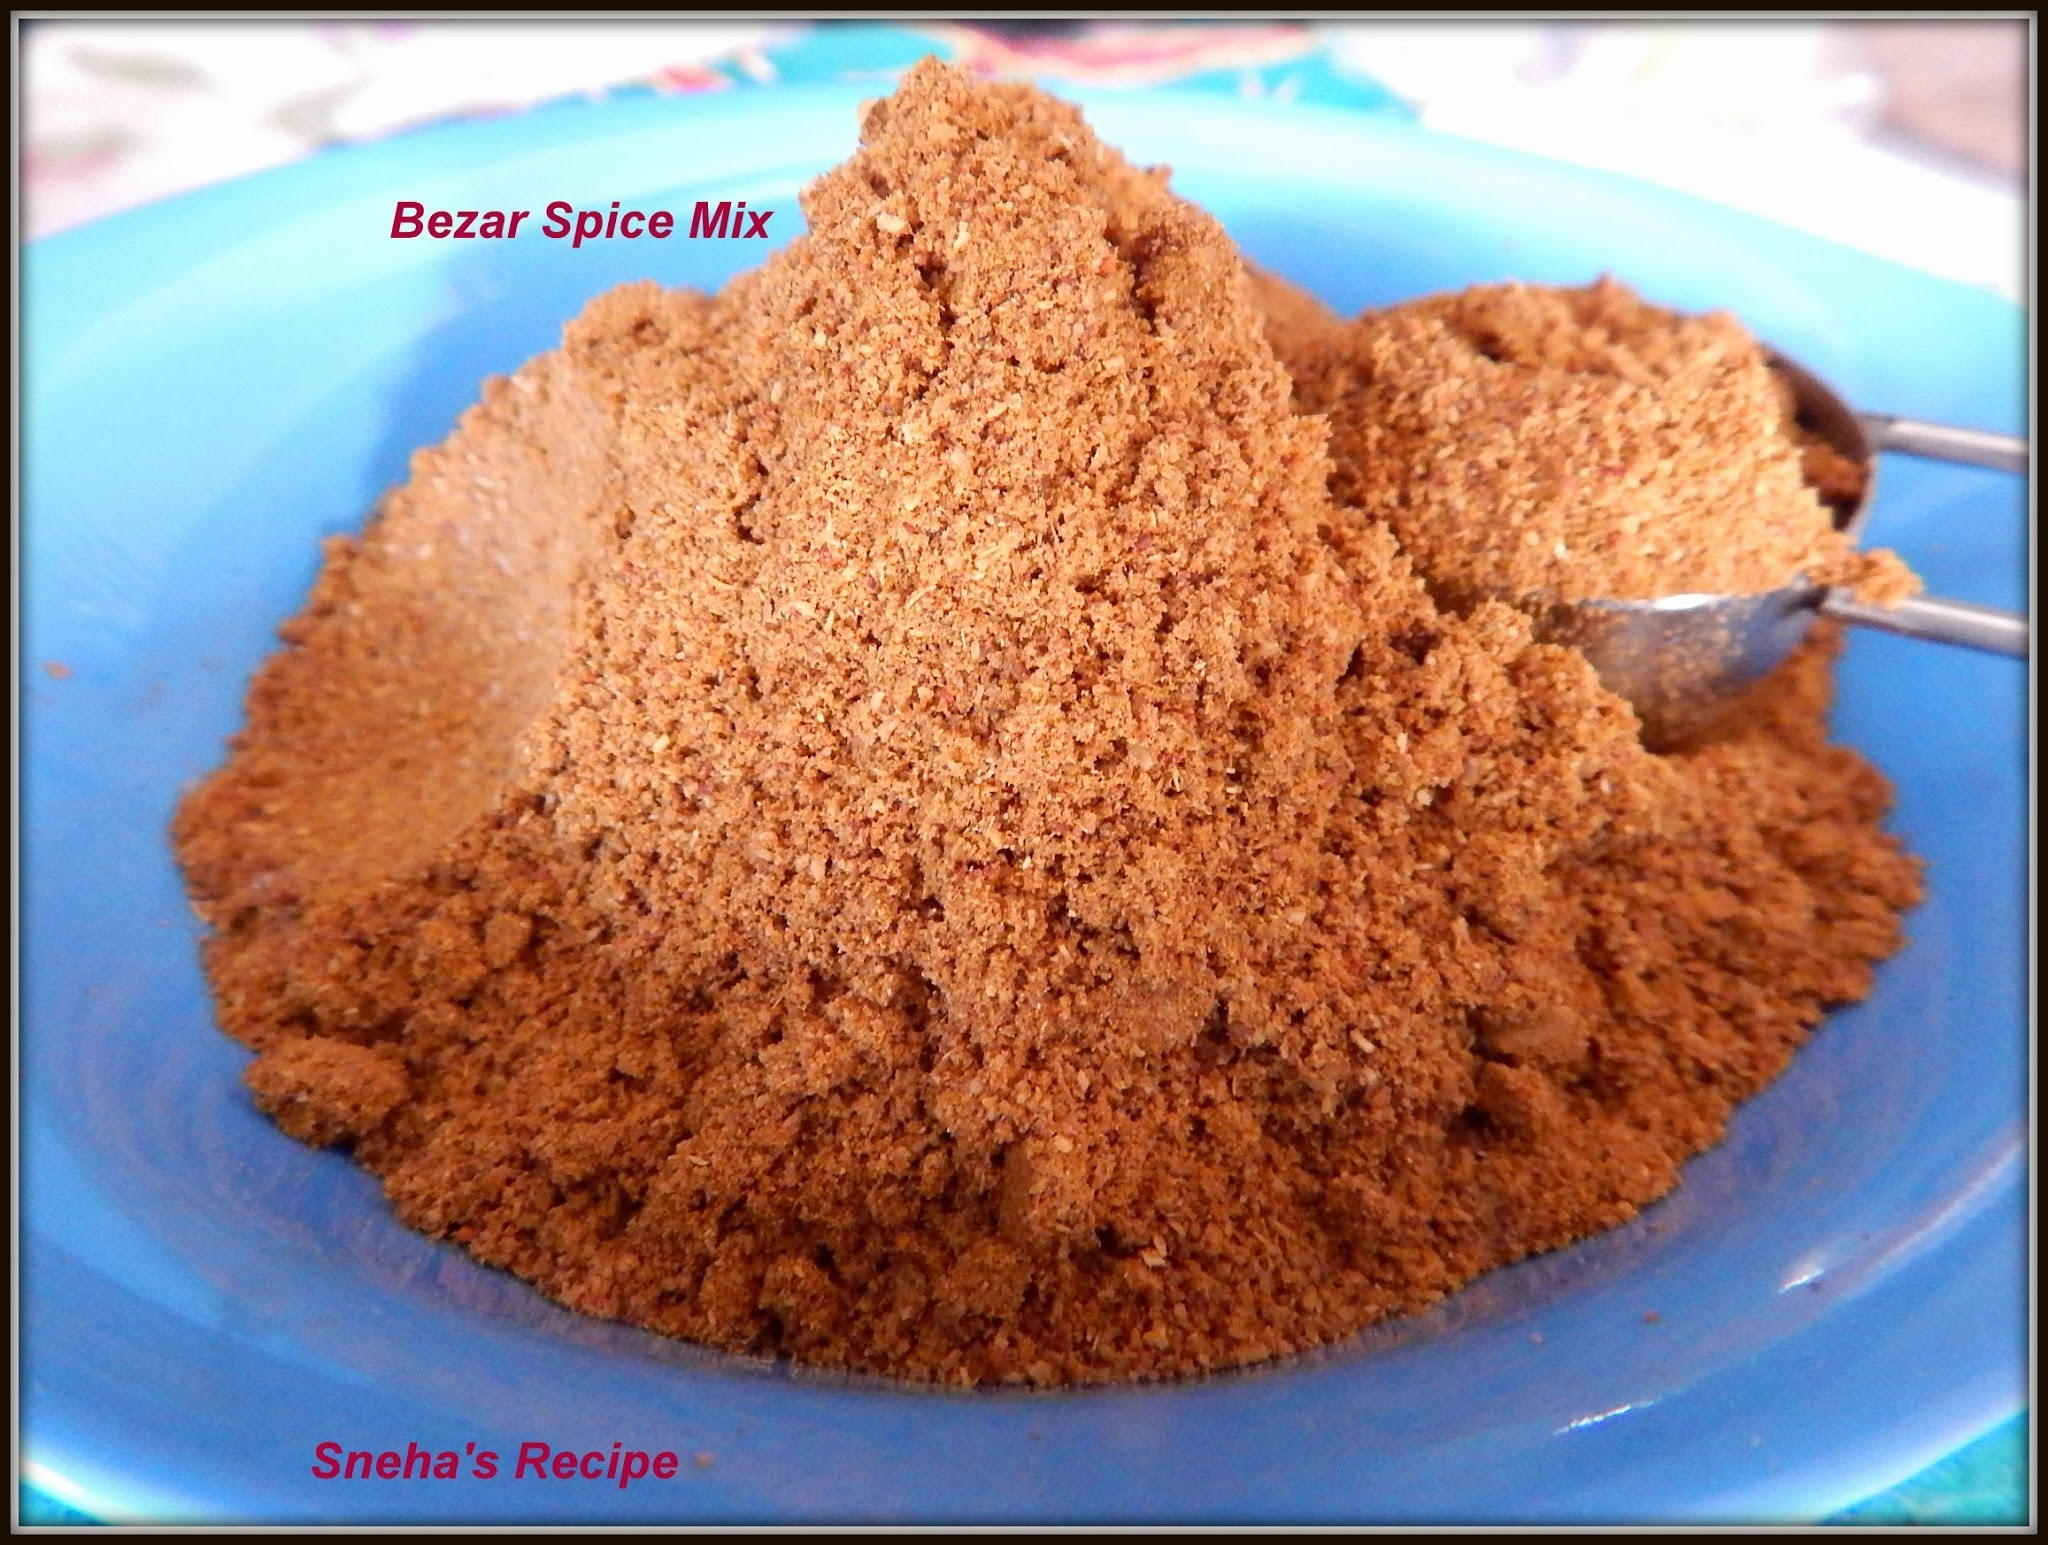 Bezar Spice Mix / Bezar  Masala - How to Make this Arabic Spice at Home